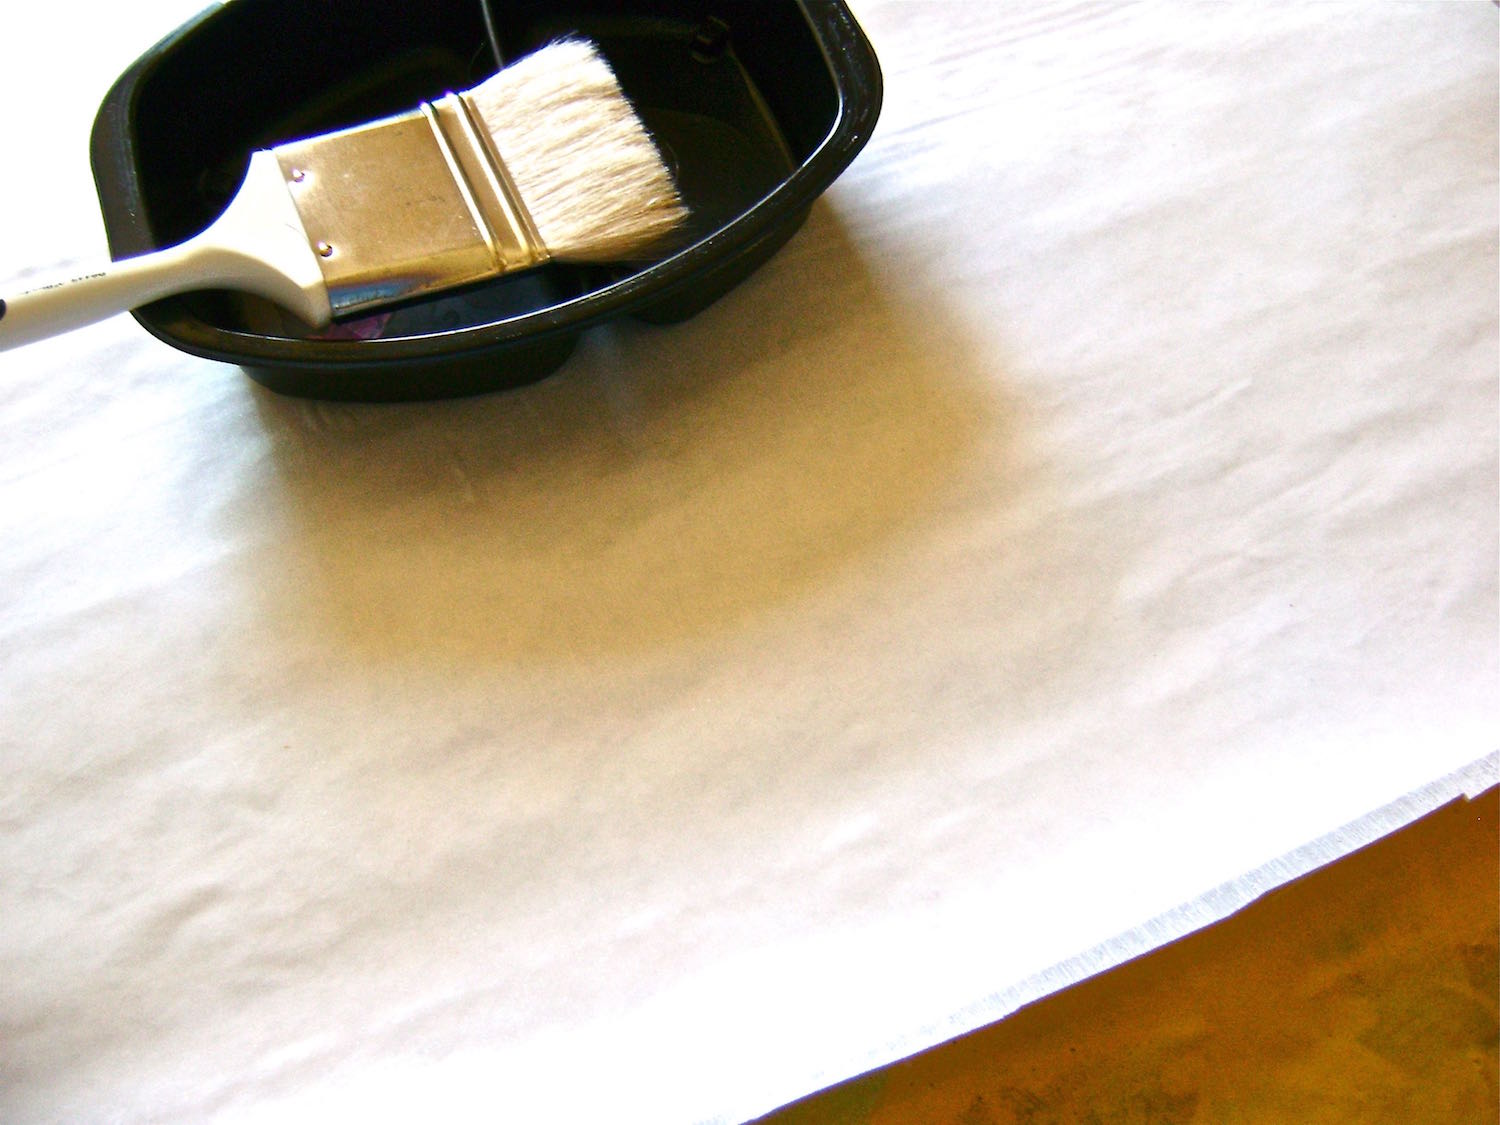 step 3 - With a bristle brush, apply a coat of Fast Finish Decoupage to the bonded fabric. This product will give the finished flower petals the body they need.